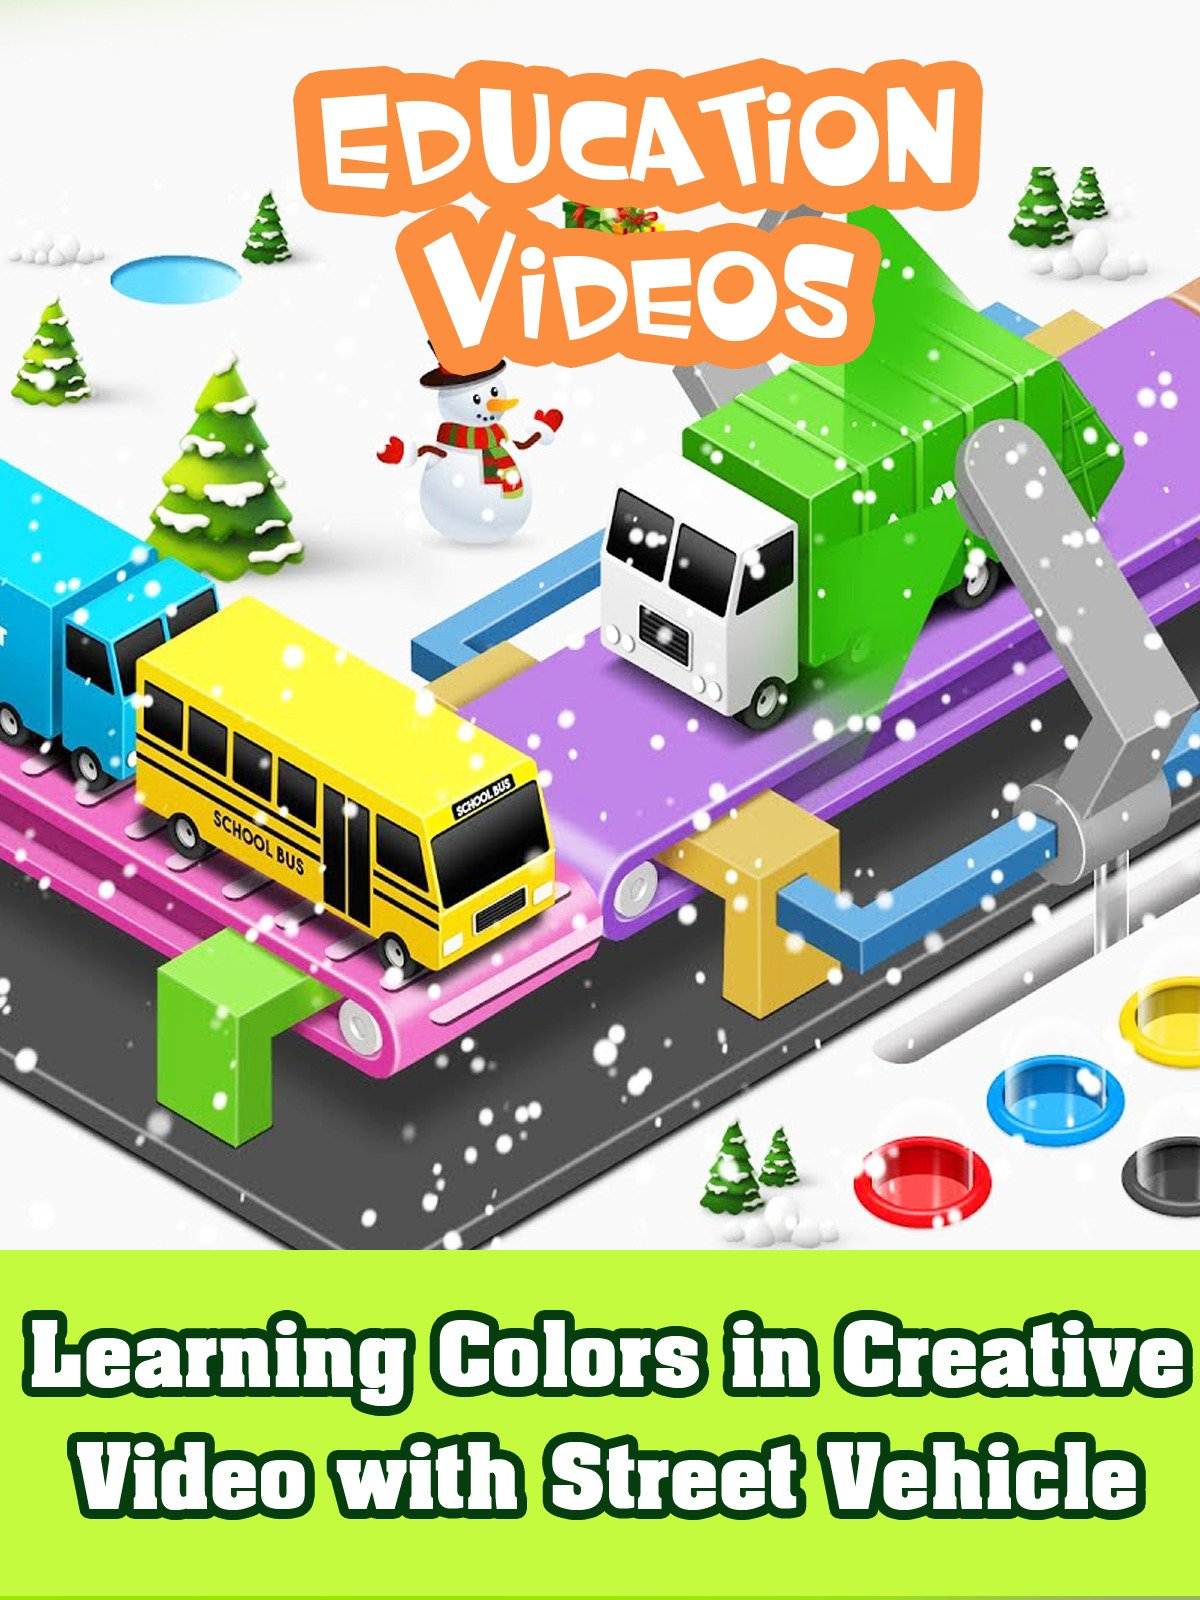 Learning Colors in Creative Video with Street Vehicle